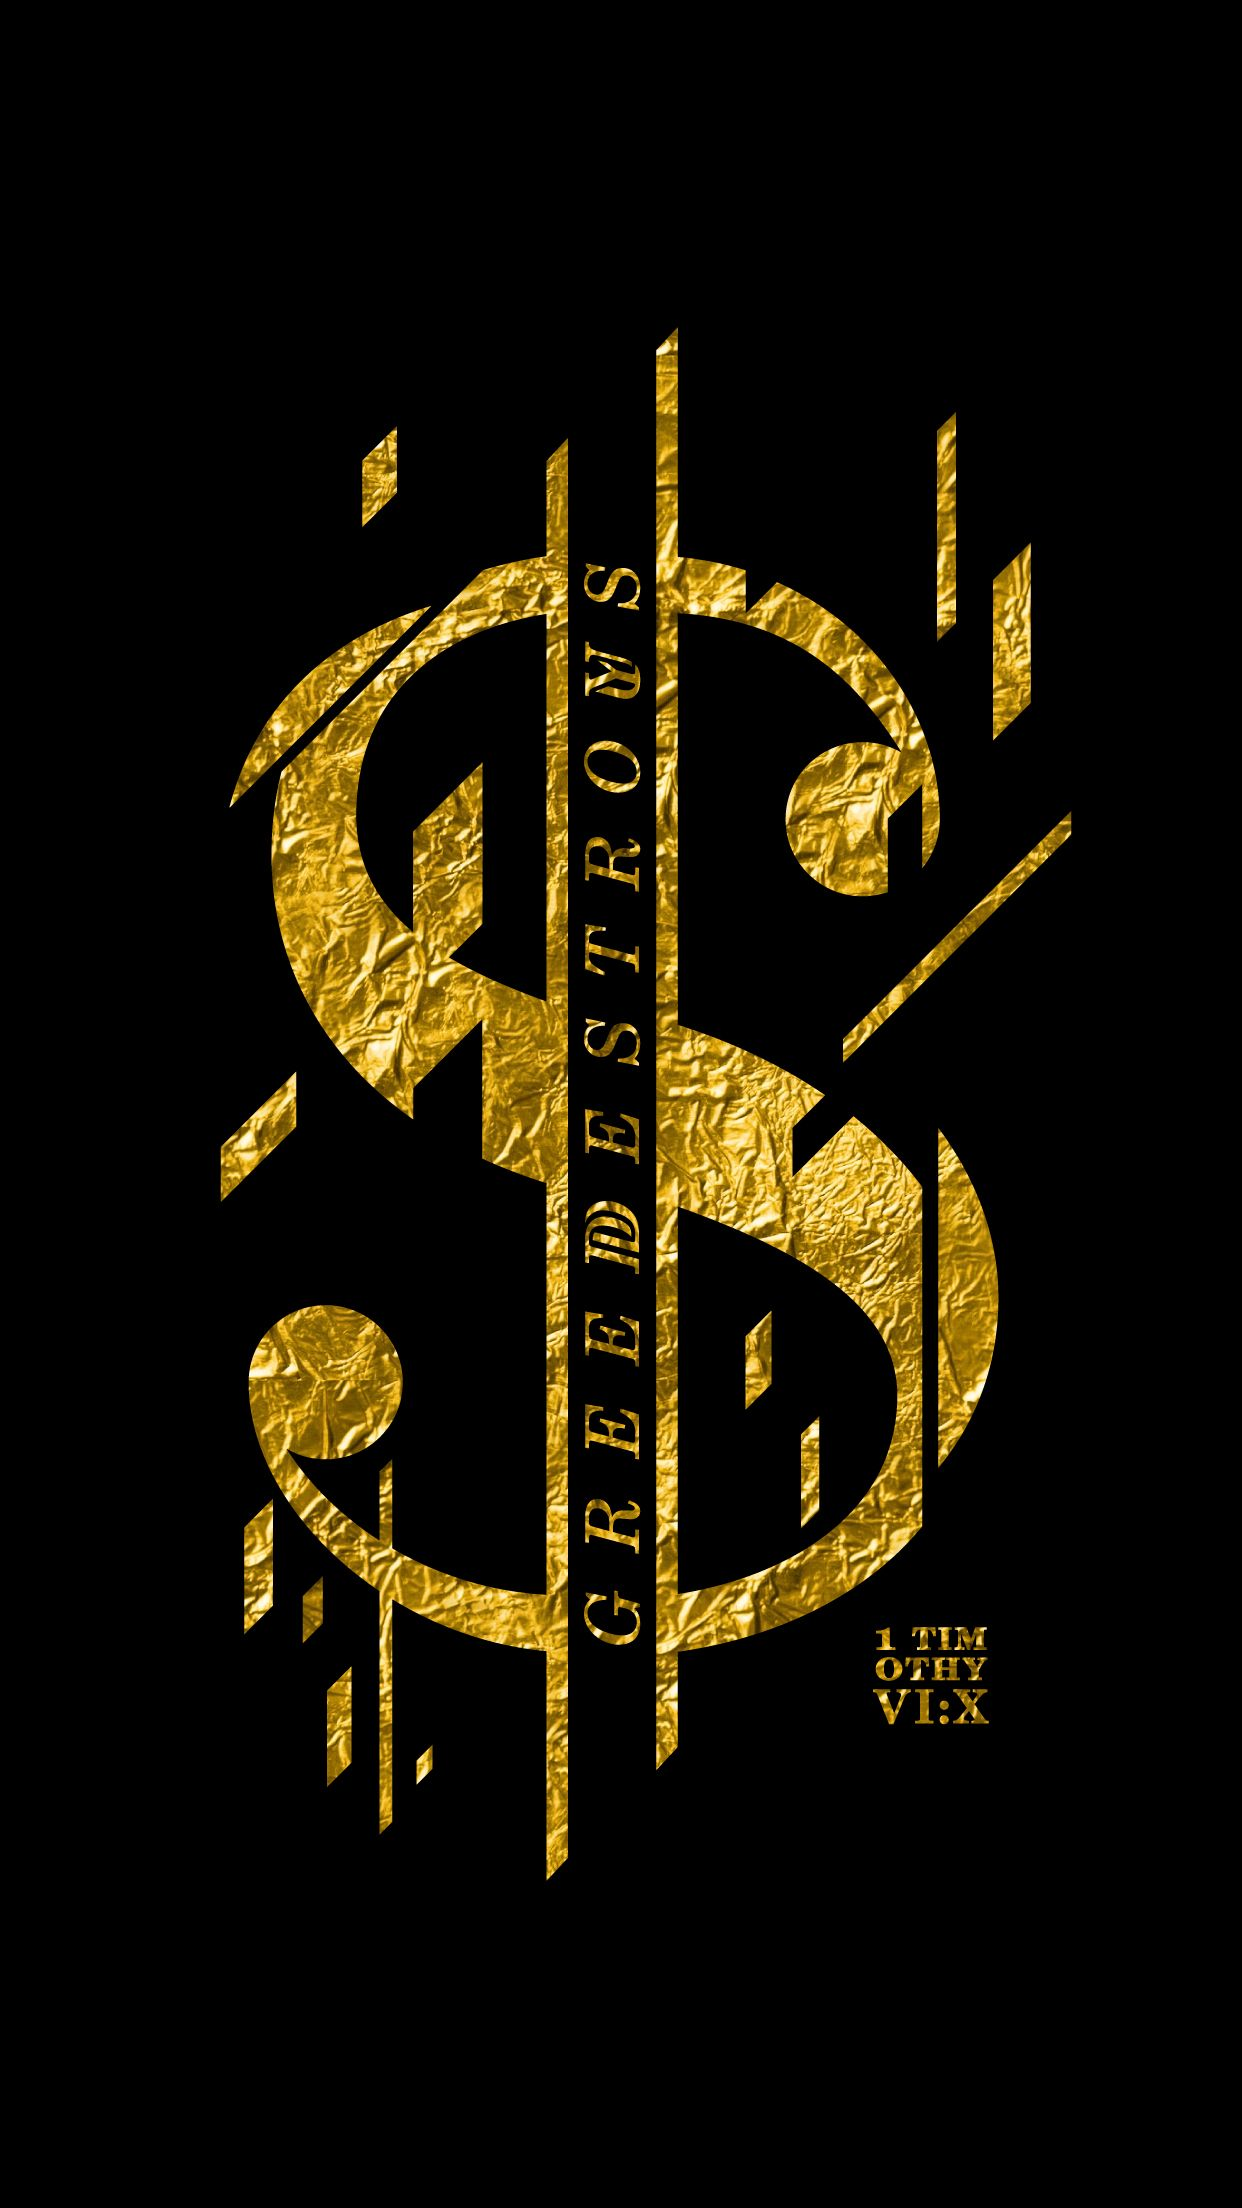 1242x2208 Love of Money – Greed Destroys Us   digifotobook by Zachary Chione